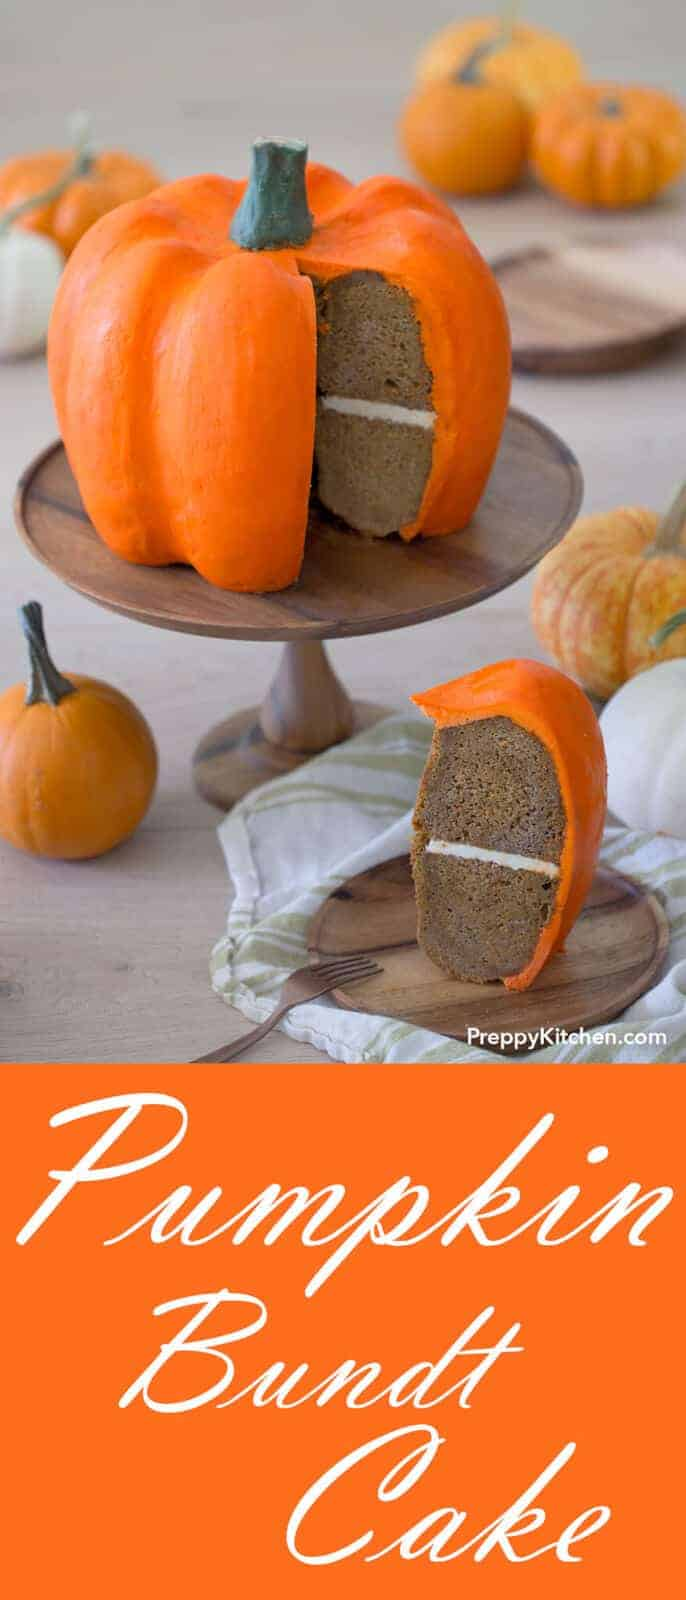 This show-stopping pumpkin bundt cake might look just like a real pumpkin but don't forget, it tastes amazing too!